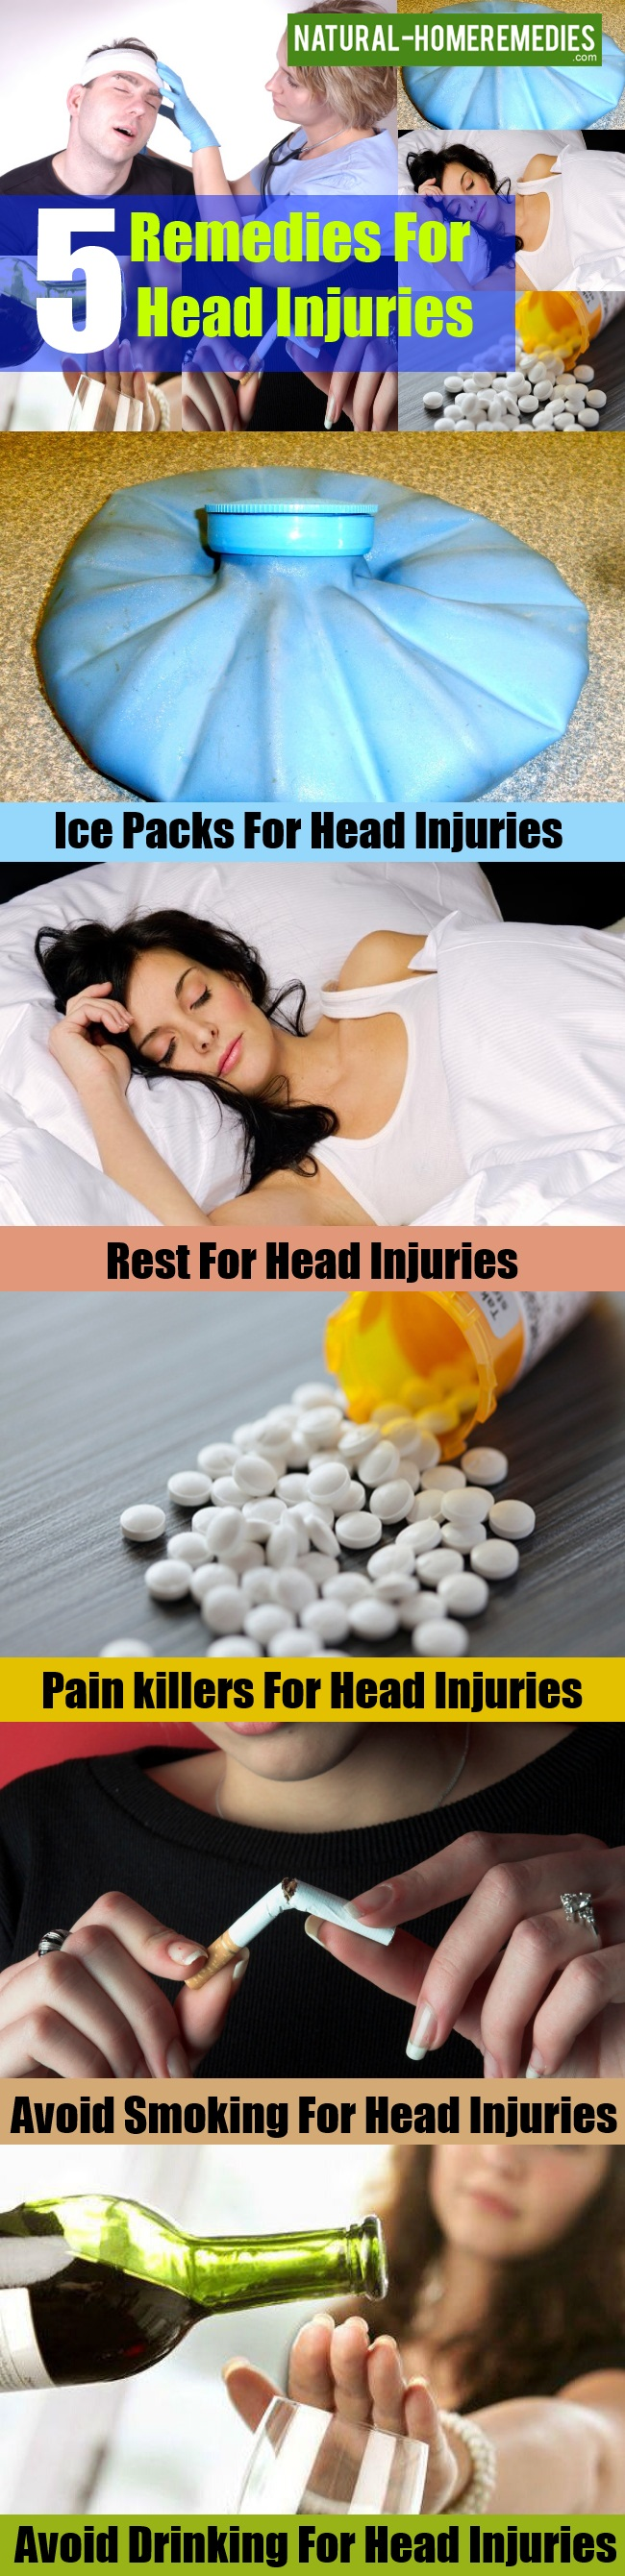 Remedies For Head Injuries